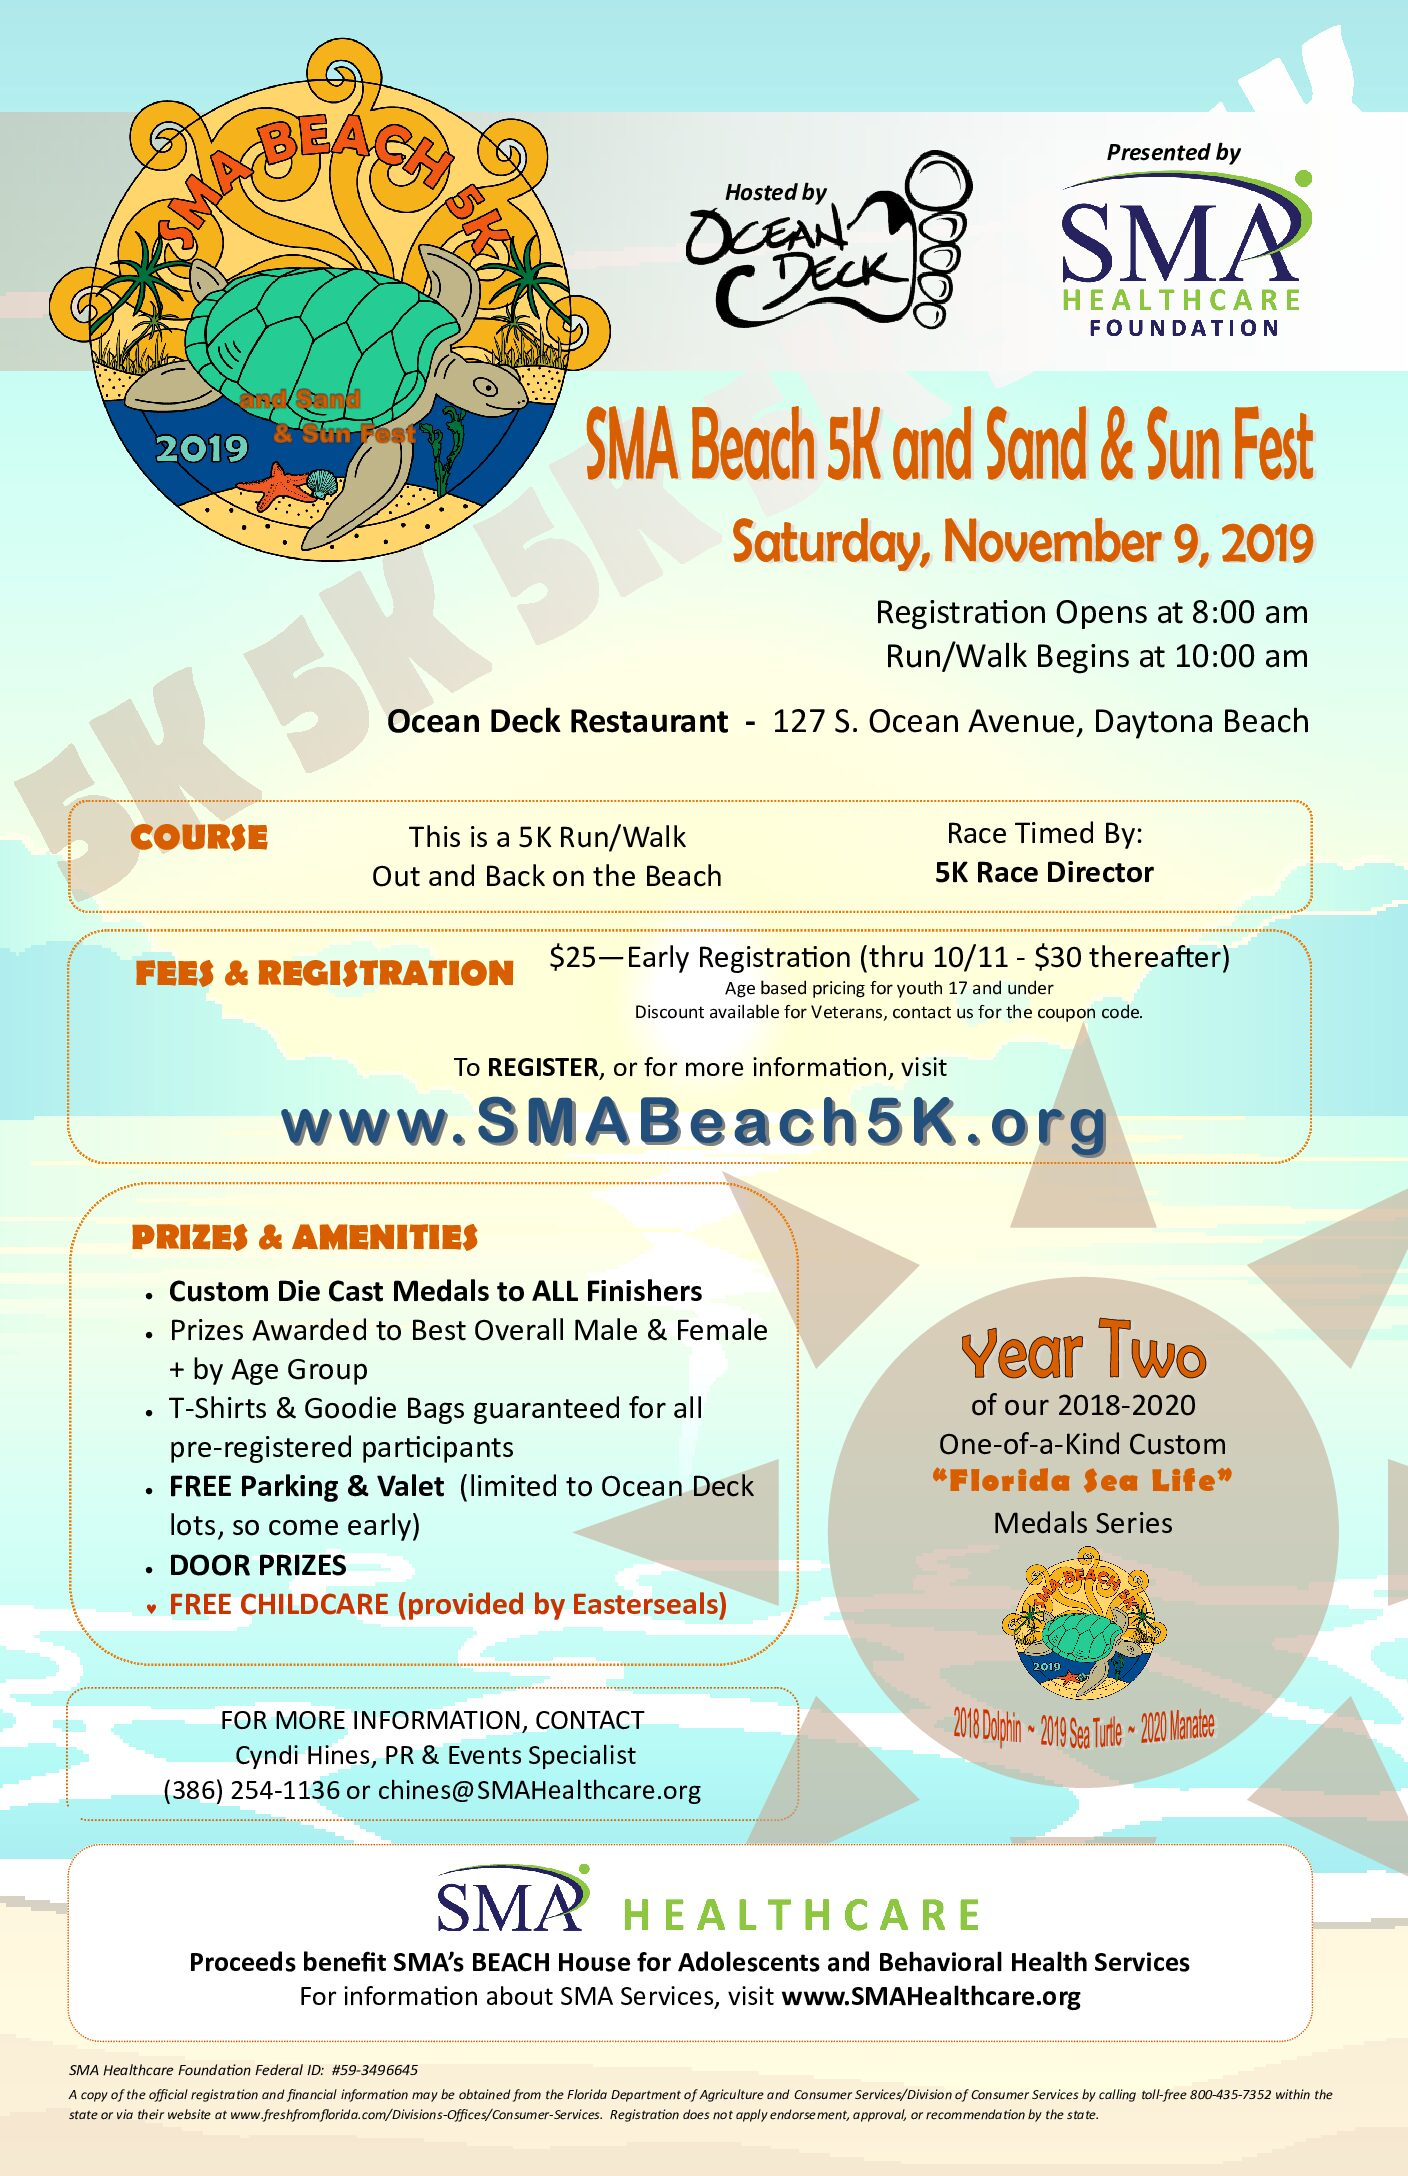 SMA Beach 5K and Sand & Sun Fest